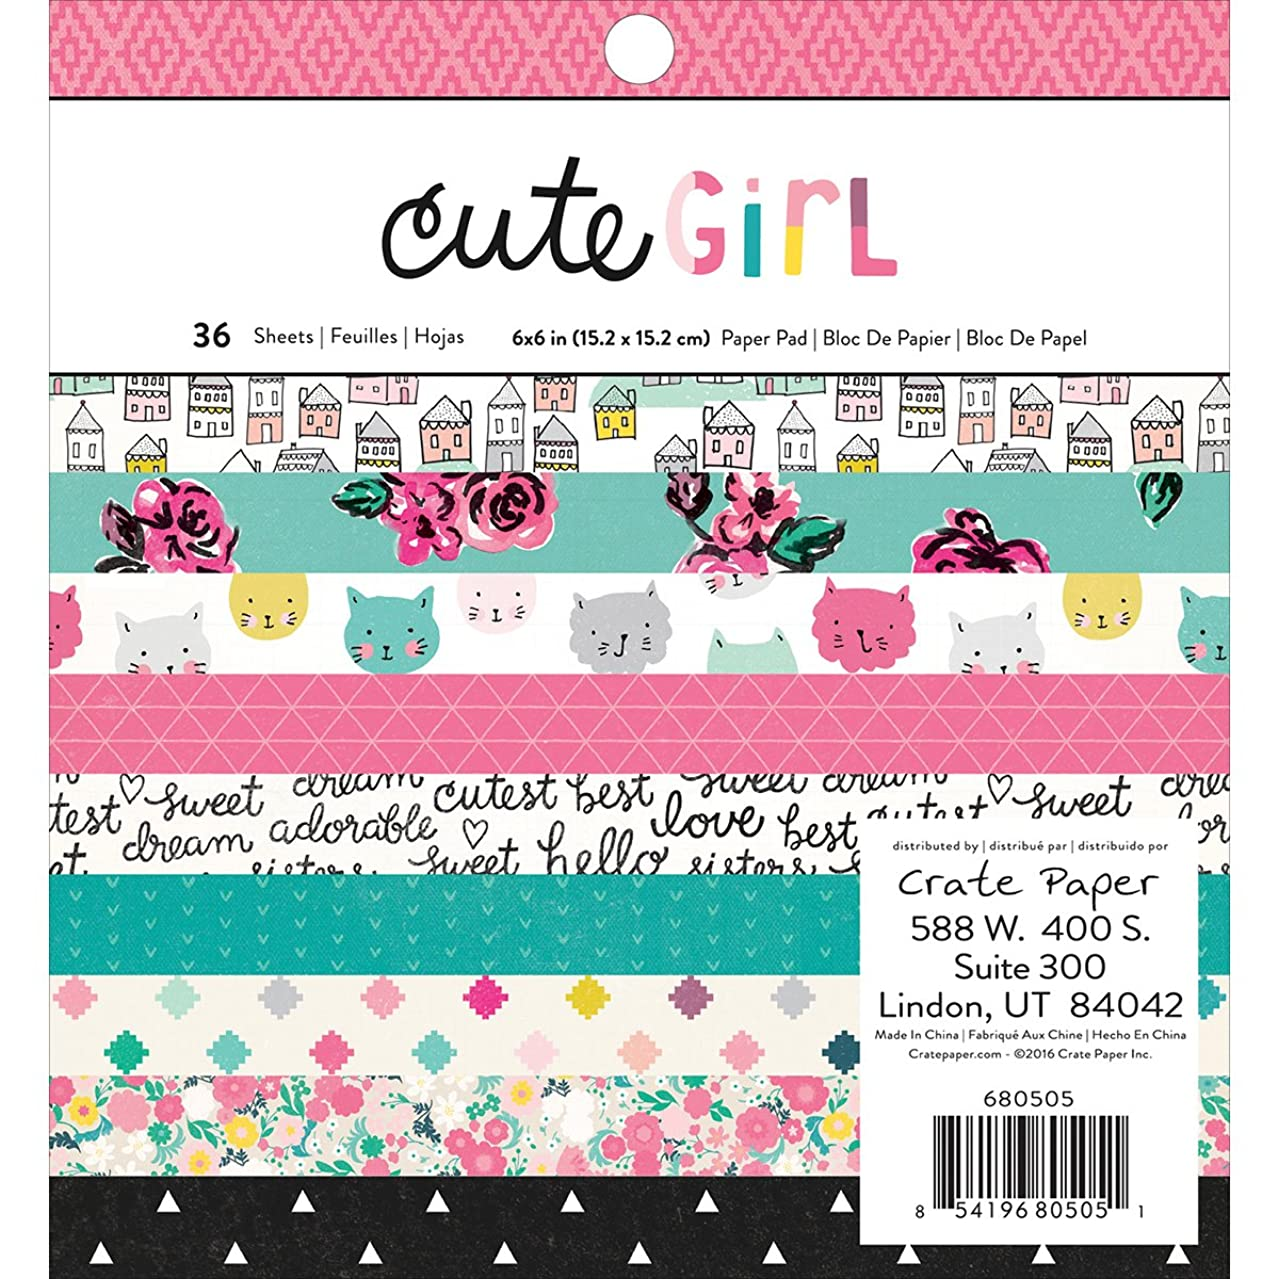 American Crafts Crate Paper Cute Girl 6 x 6